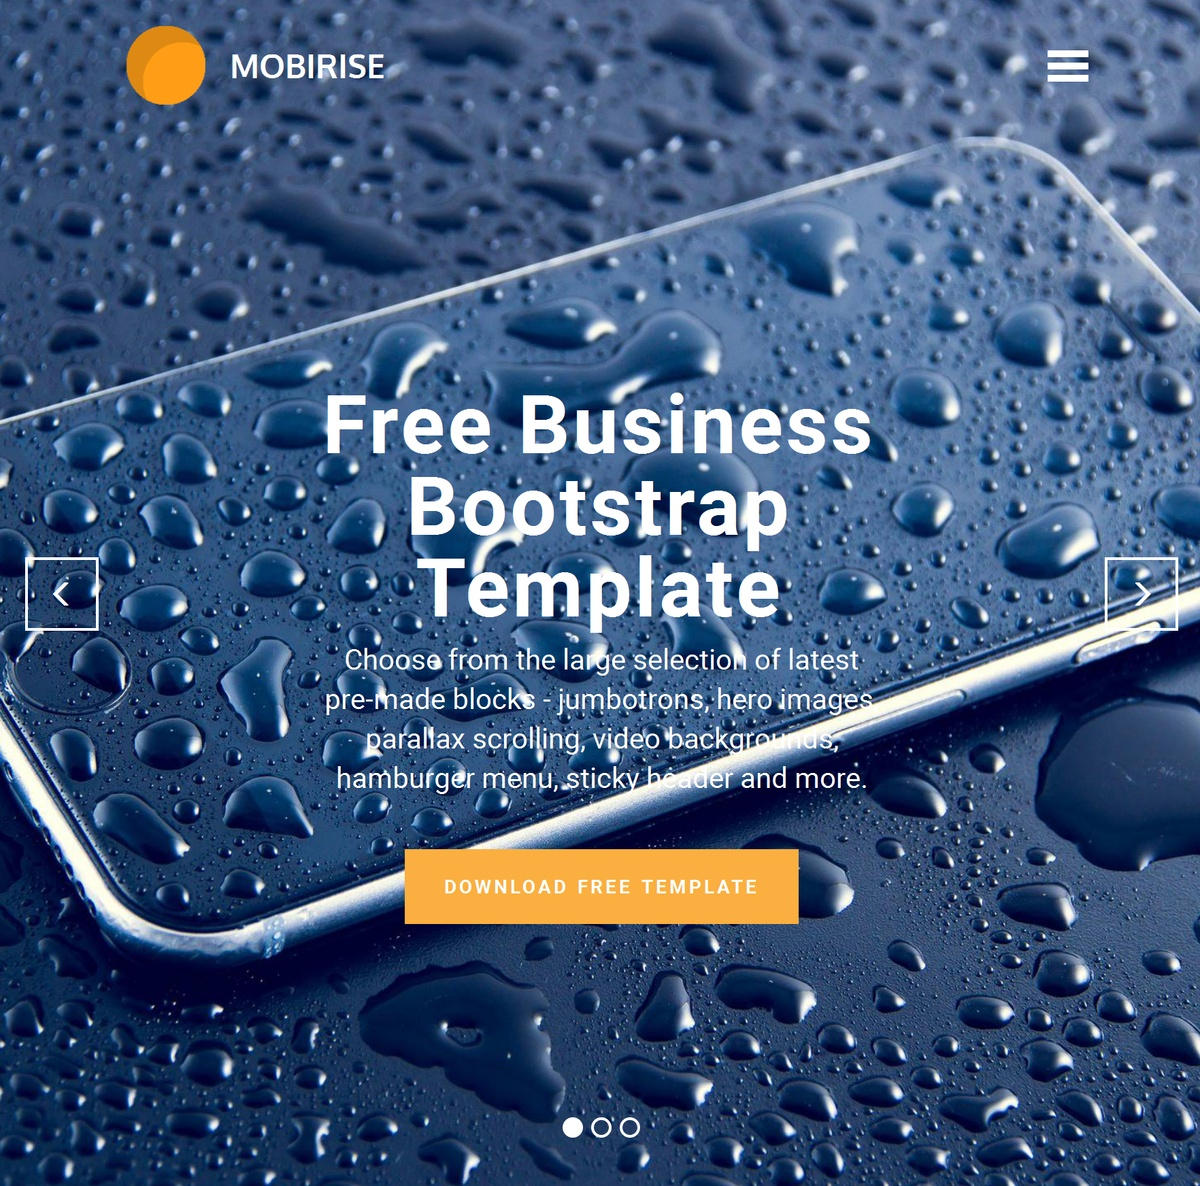 Mobile Responsive Web Templates Themes Extensions